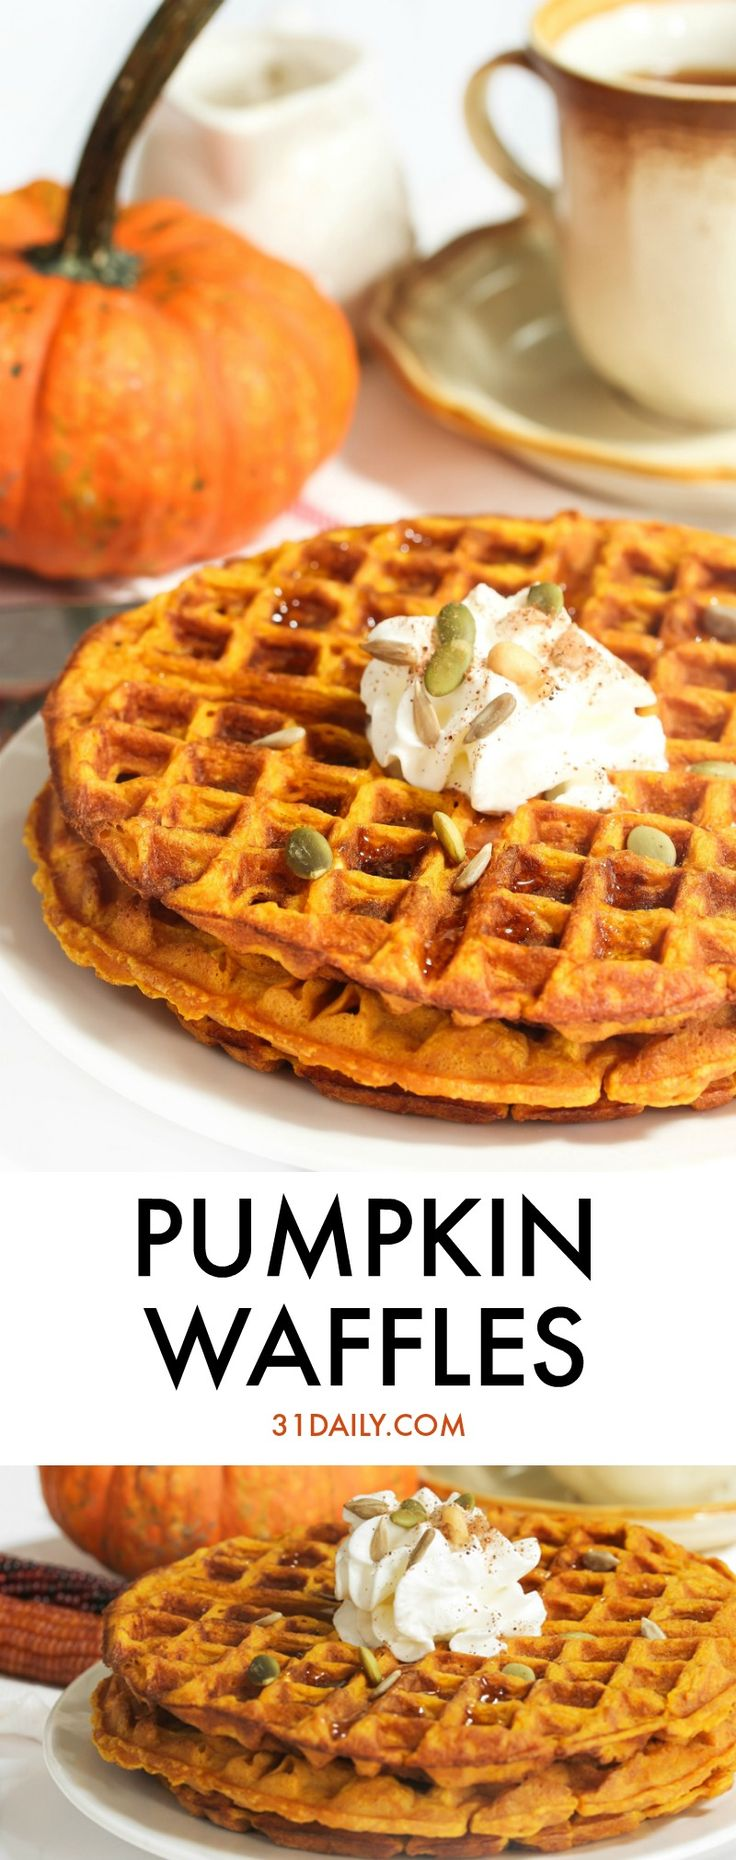 Pumpkin Waffles for Blustery Fall Mornings   31Daily.com